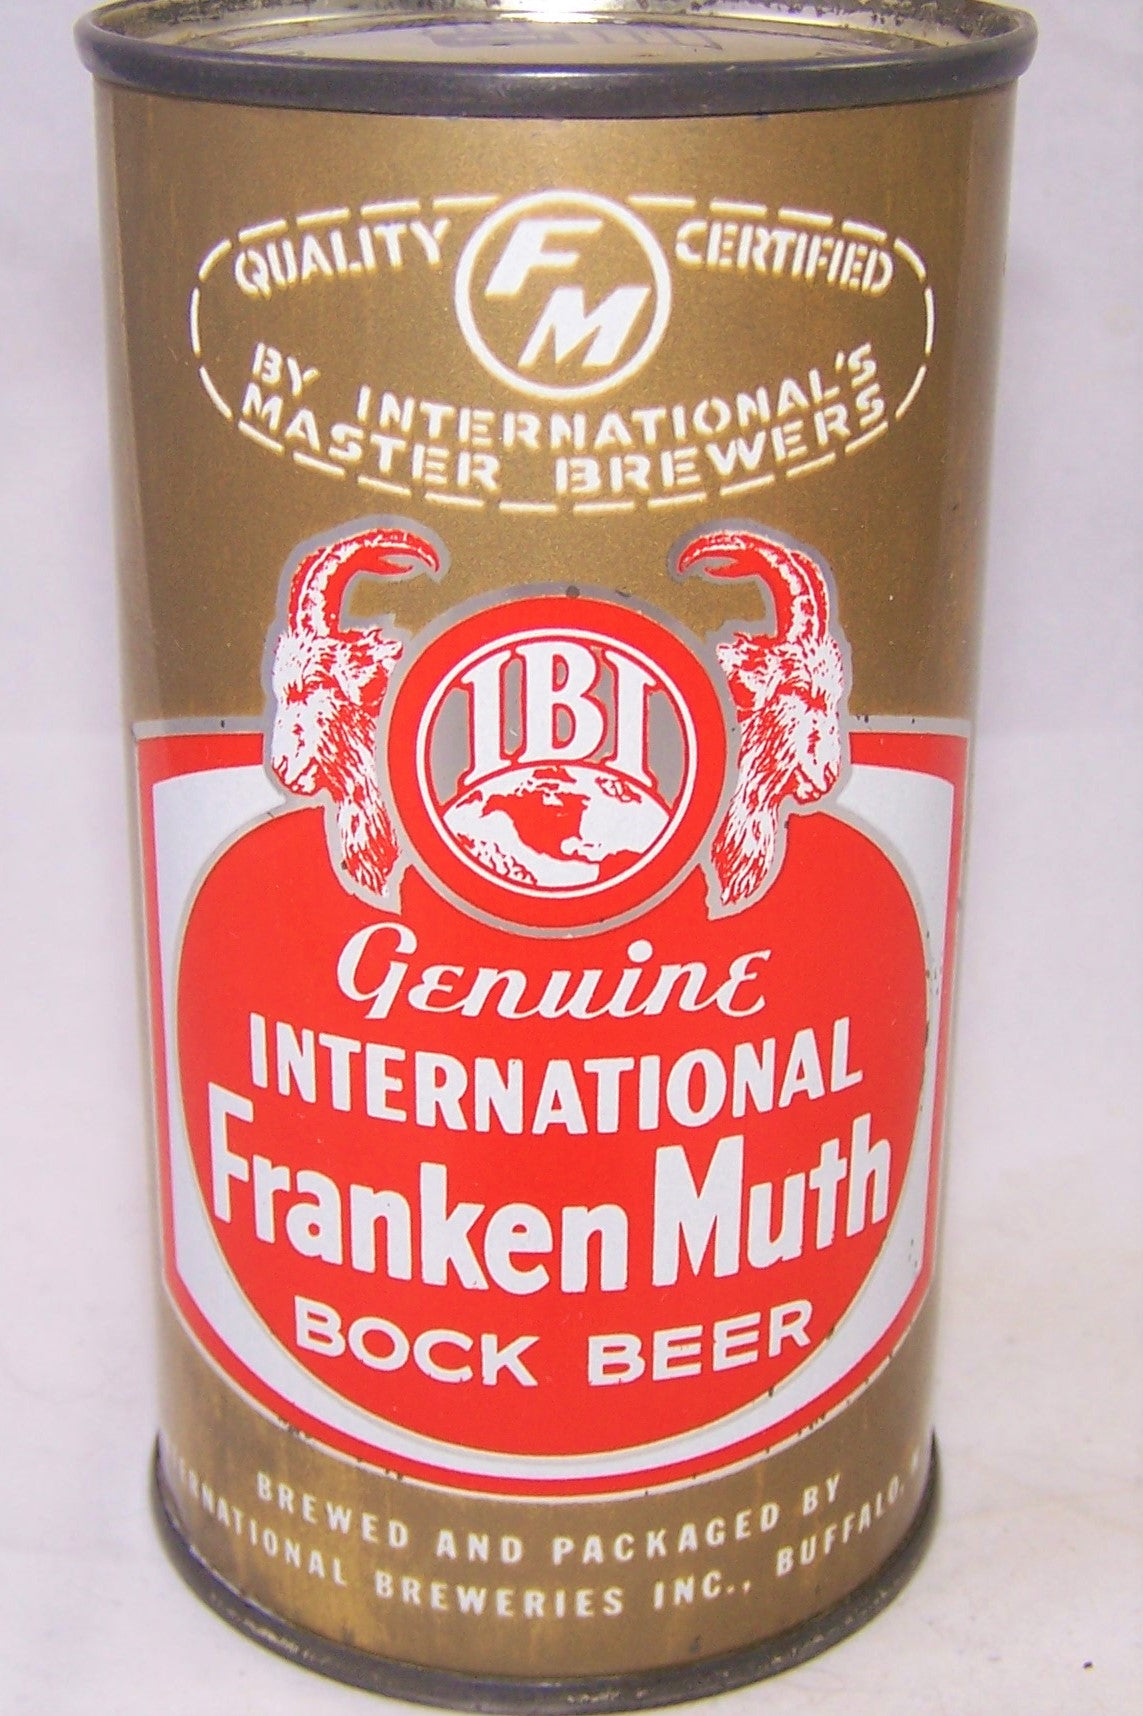 International FrankenMuth Bock Beer, USBC 85-24, Grade 1/1-  Sold 5/14/19